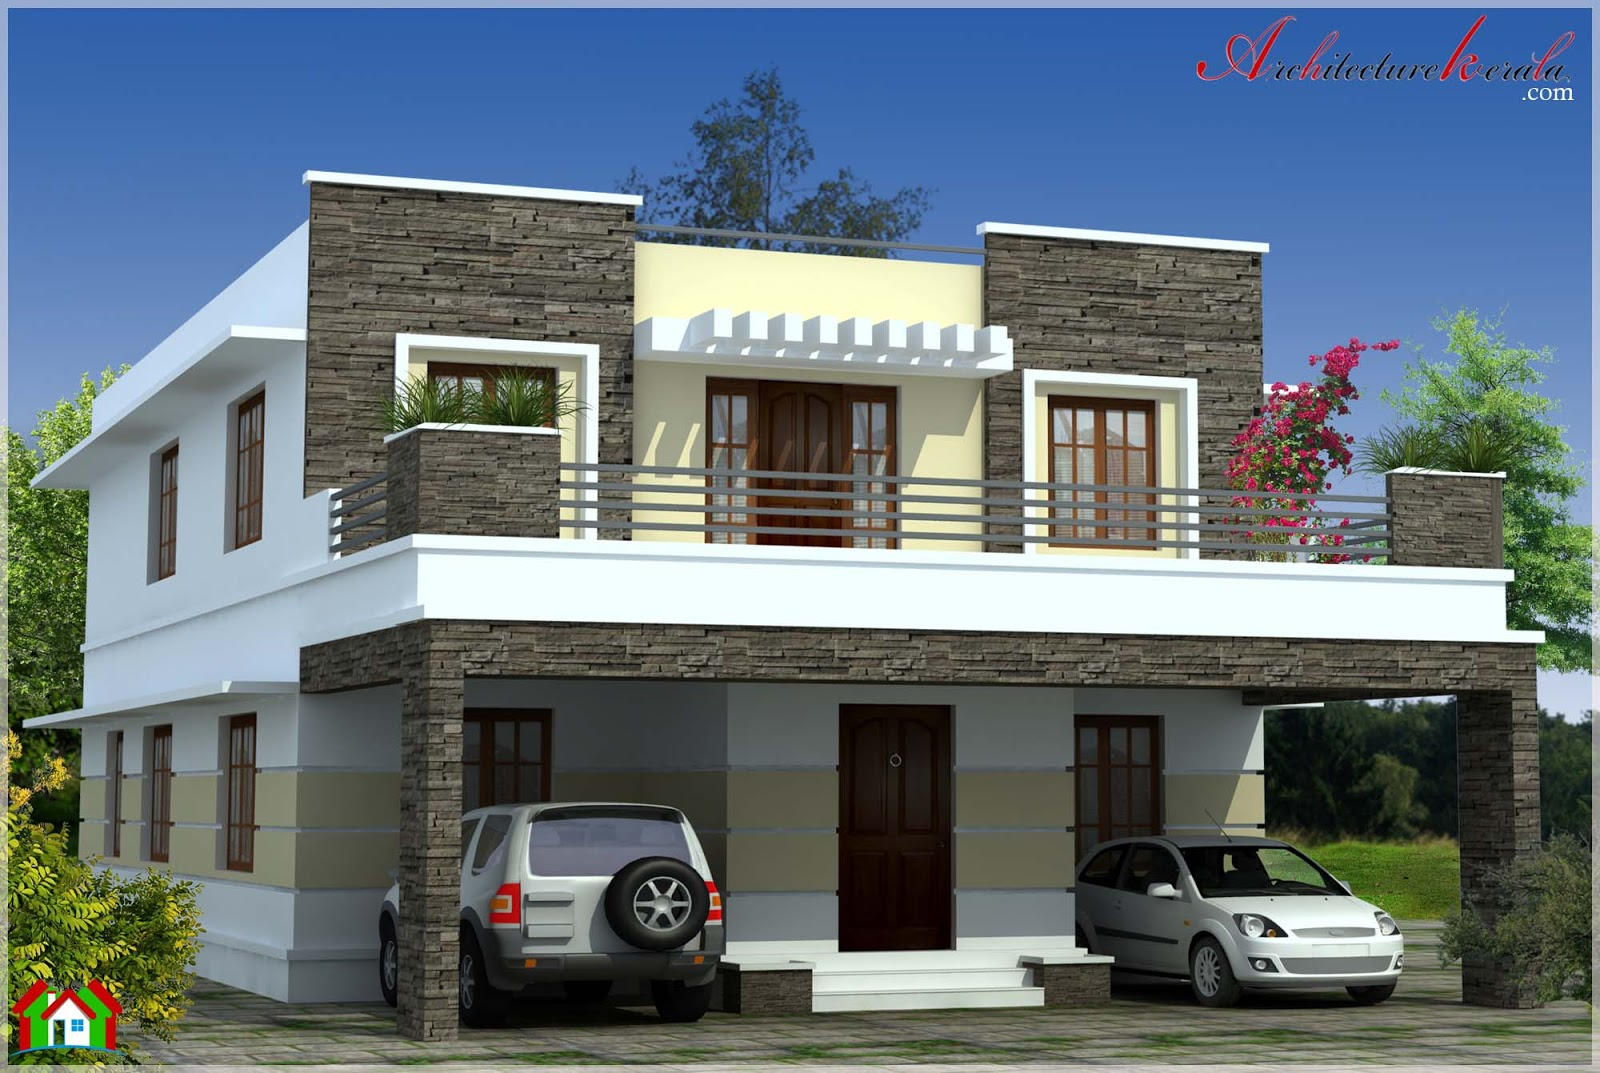 ARCHITECTURE KERALA: SIMPLE CONTEMPORARY STYLE KERALA HOUSE ELEVATION